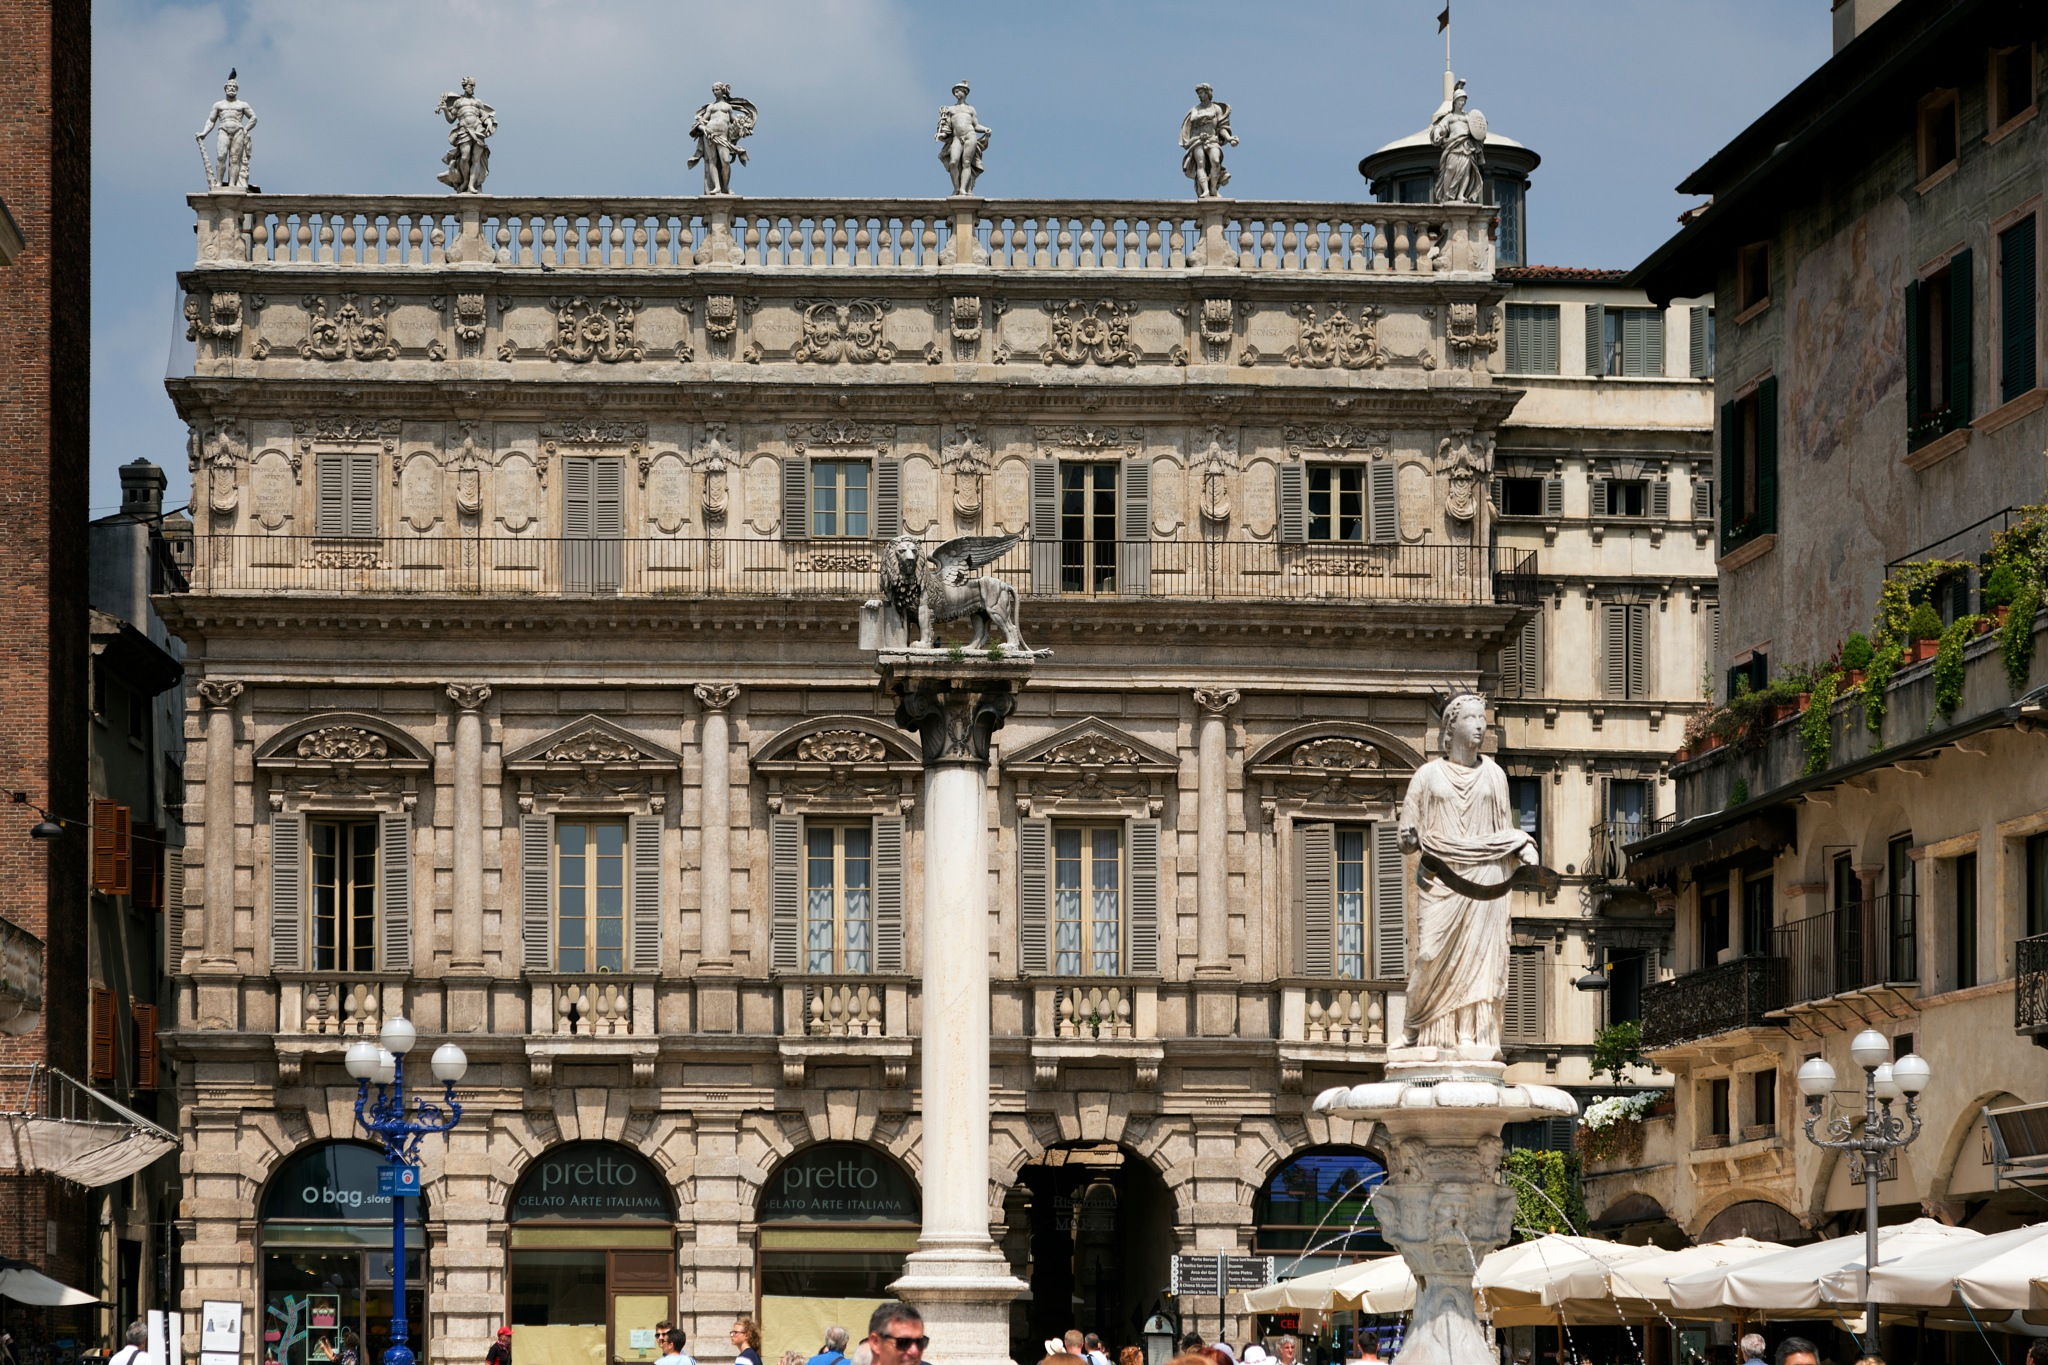 Piazza dell Erbe - 2 of 3 by Peter Ellison